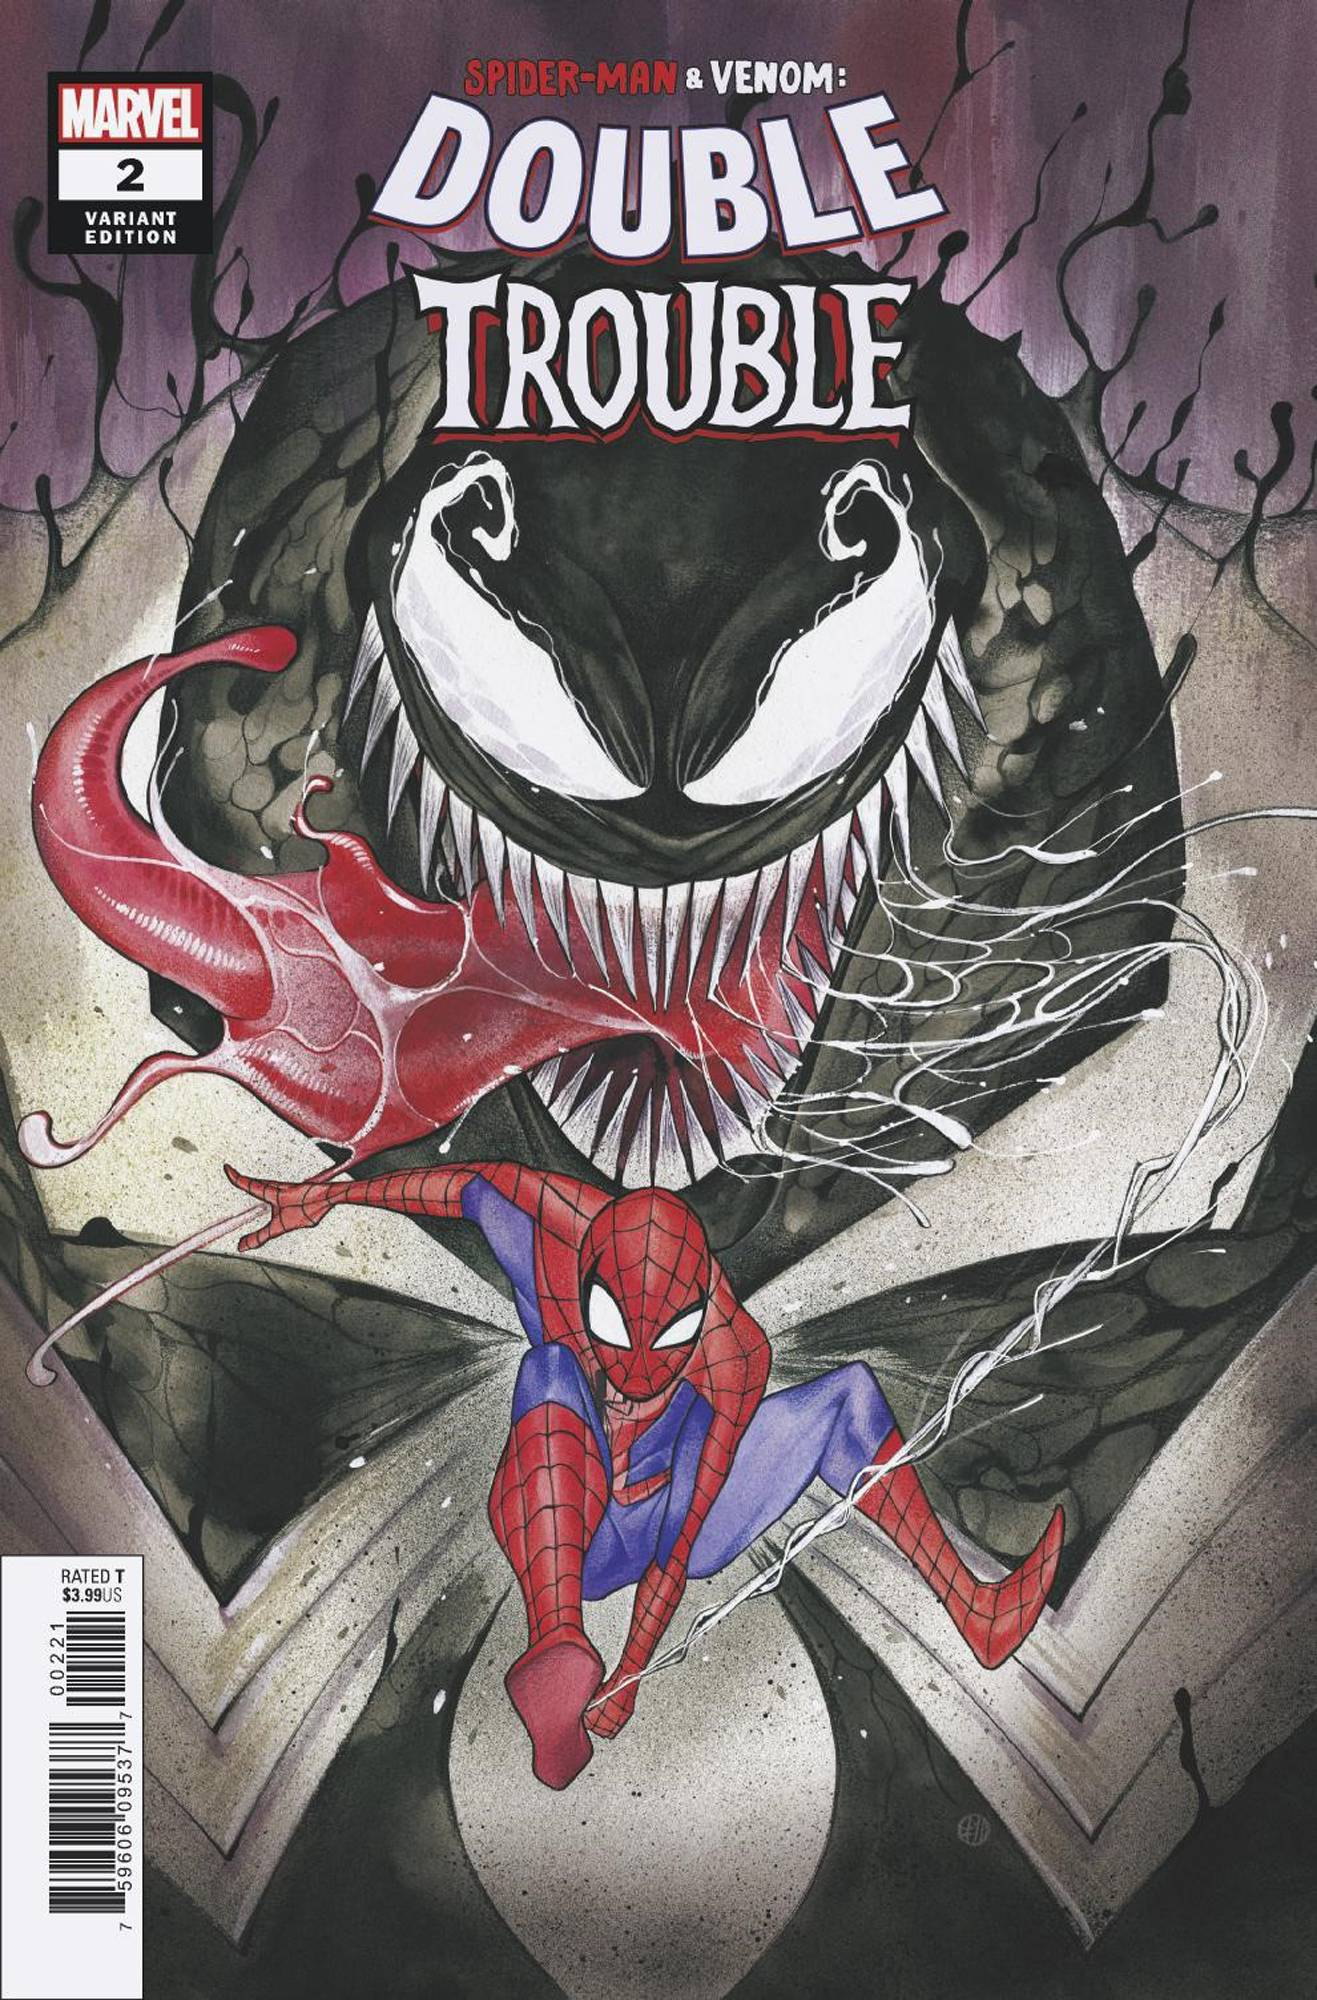 Spider-Man & Venom: Double Trouble #2 (2019)